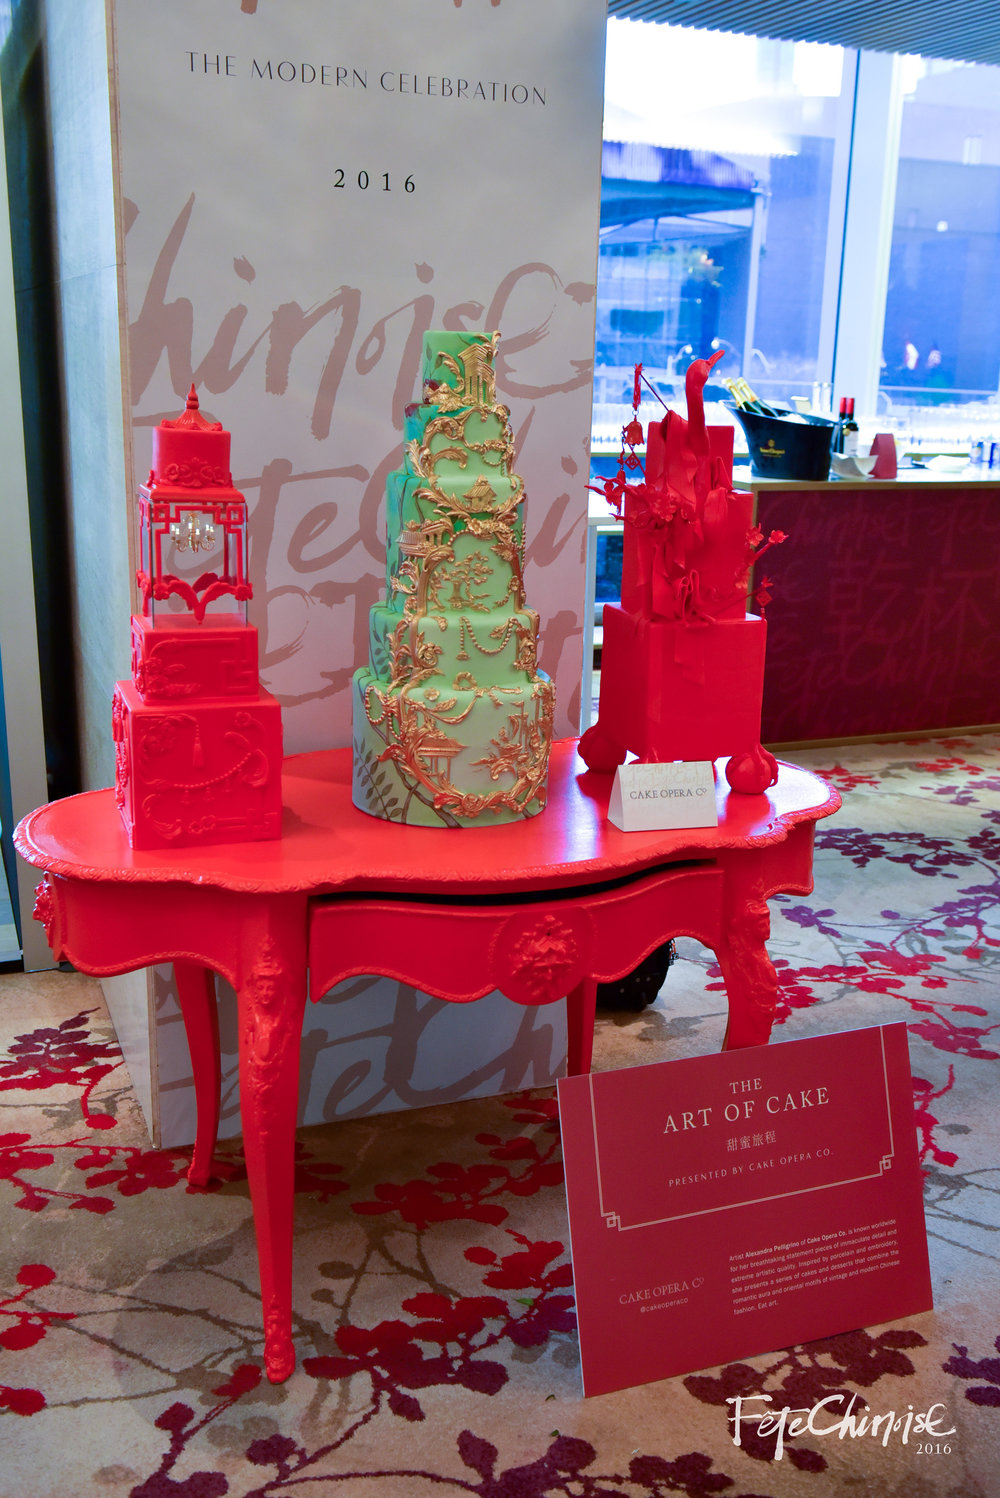 Cake Opera's trio of cakes inspired by red lacquer tables and a cake with colours and chinoiserie patterns inspired by this year's magazine cover.